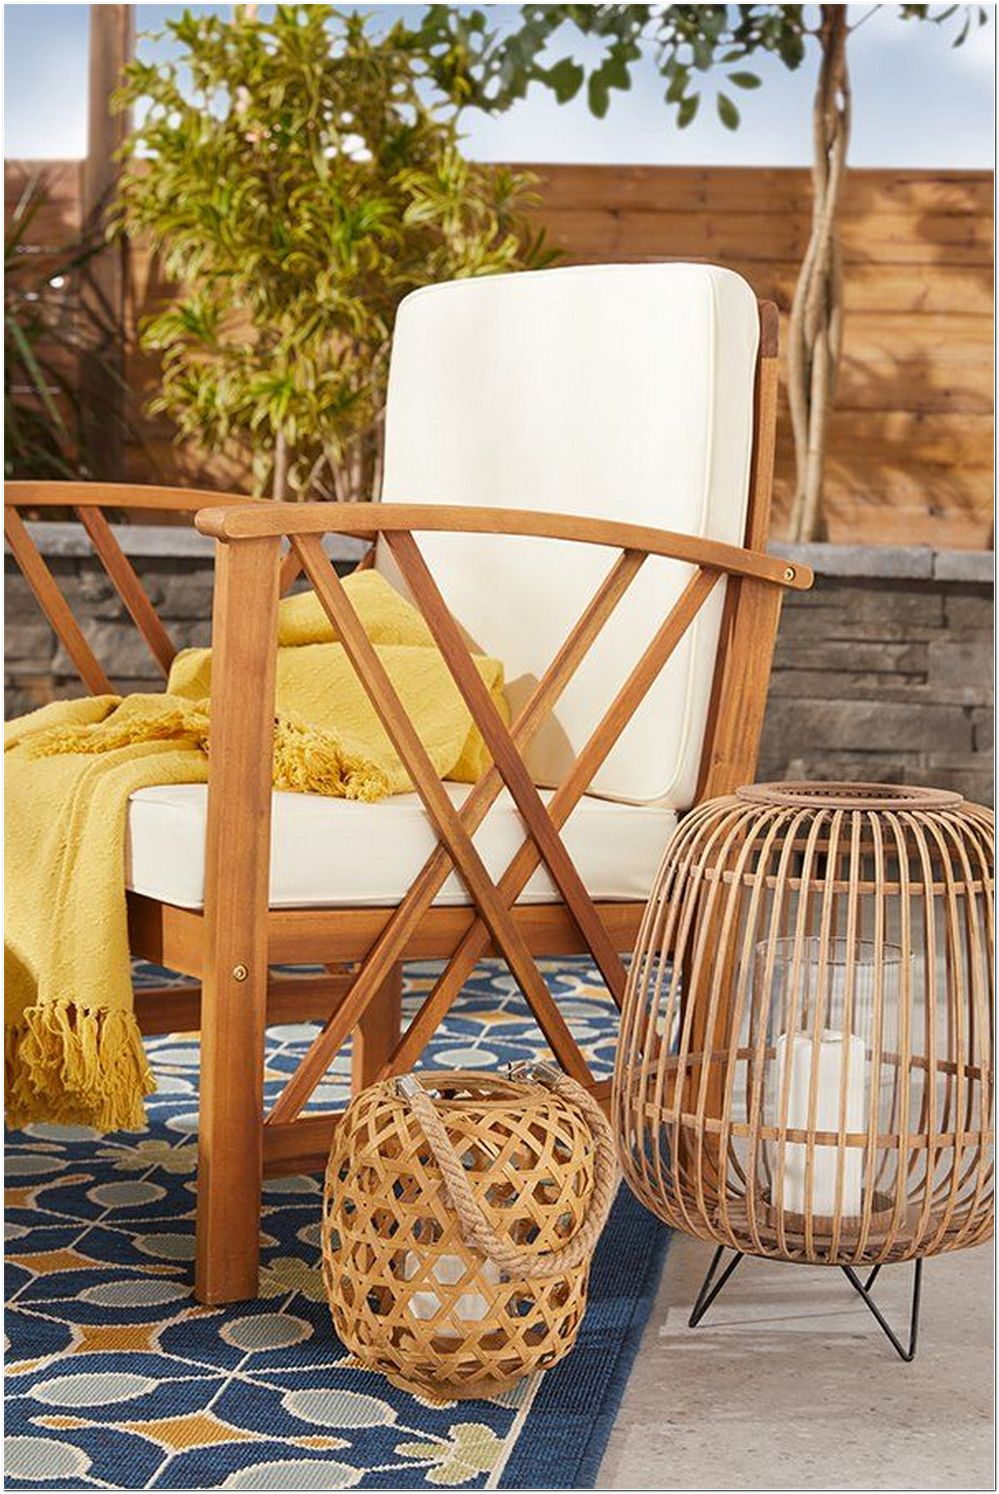 75 How to Find the Best Patio Furniture Deals